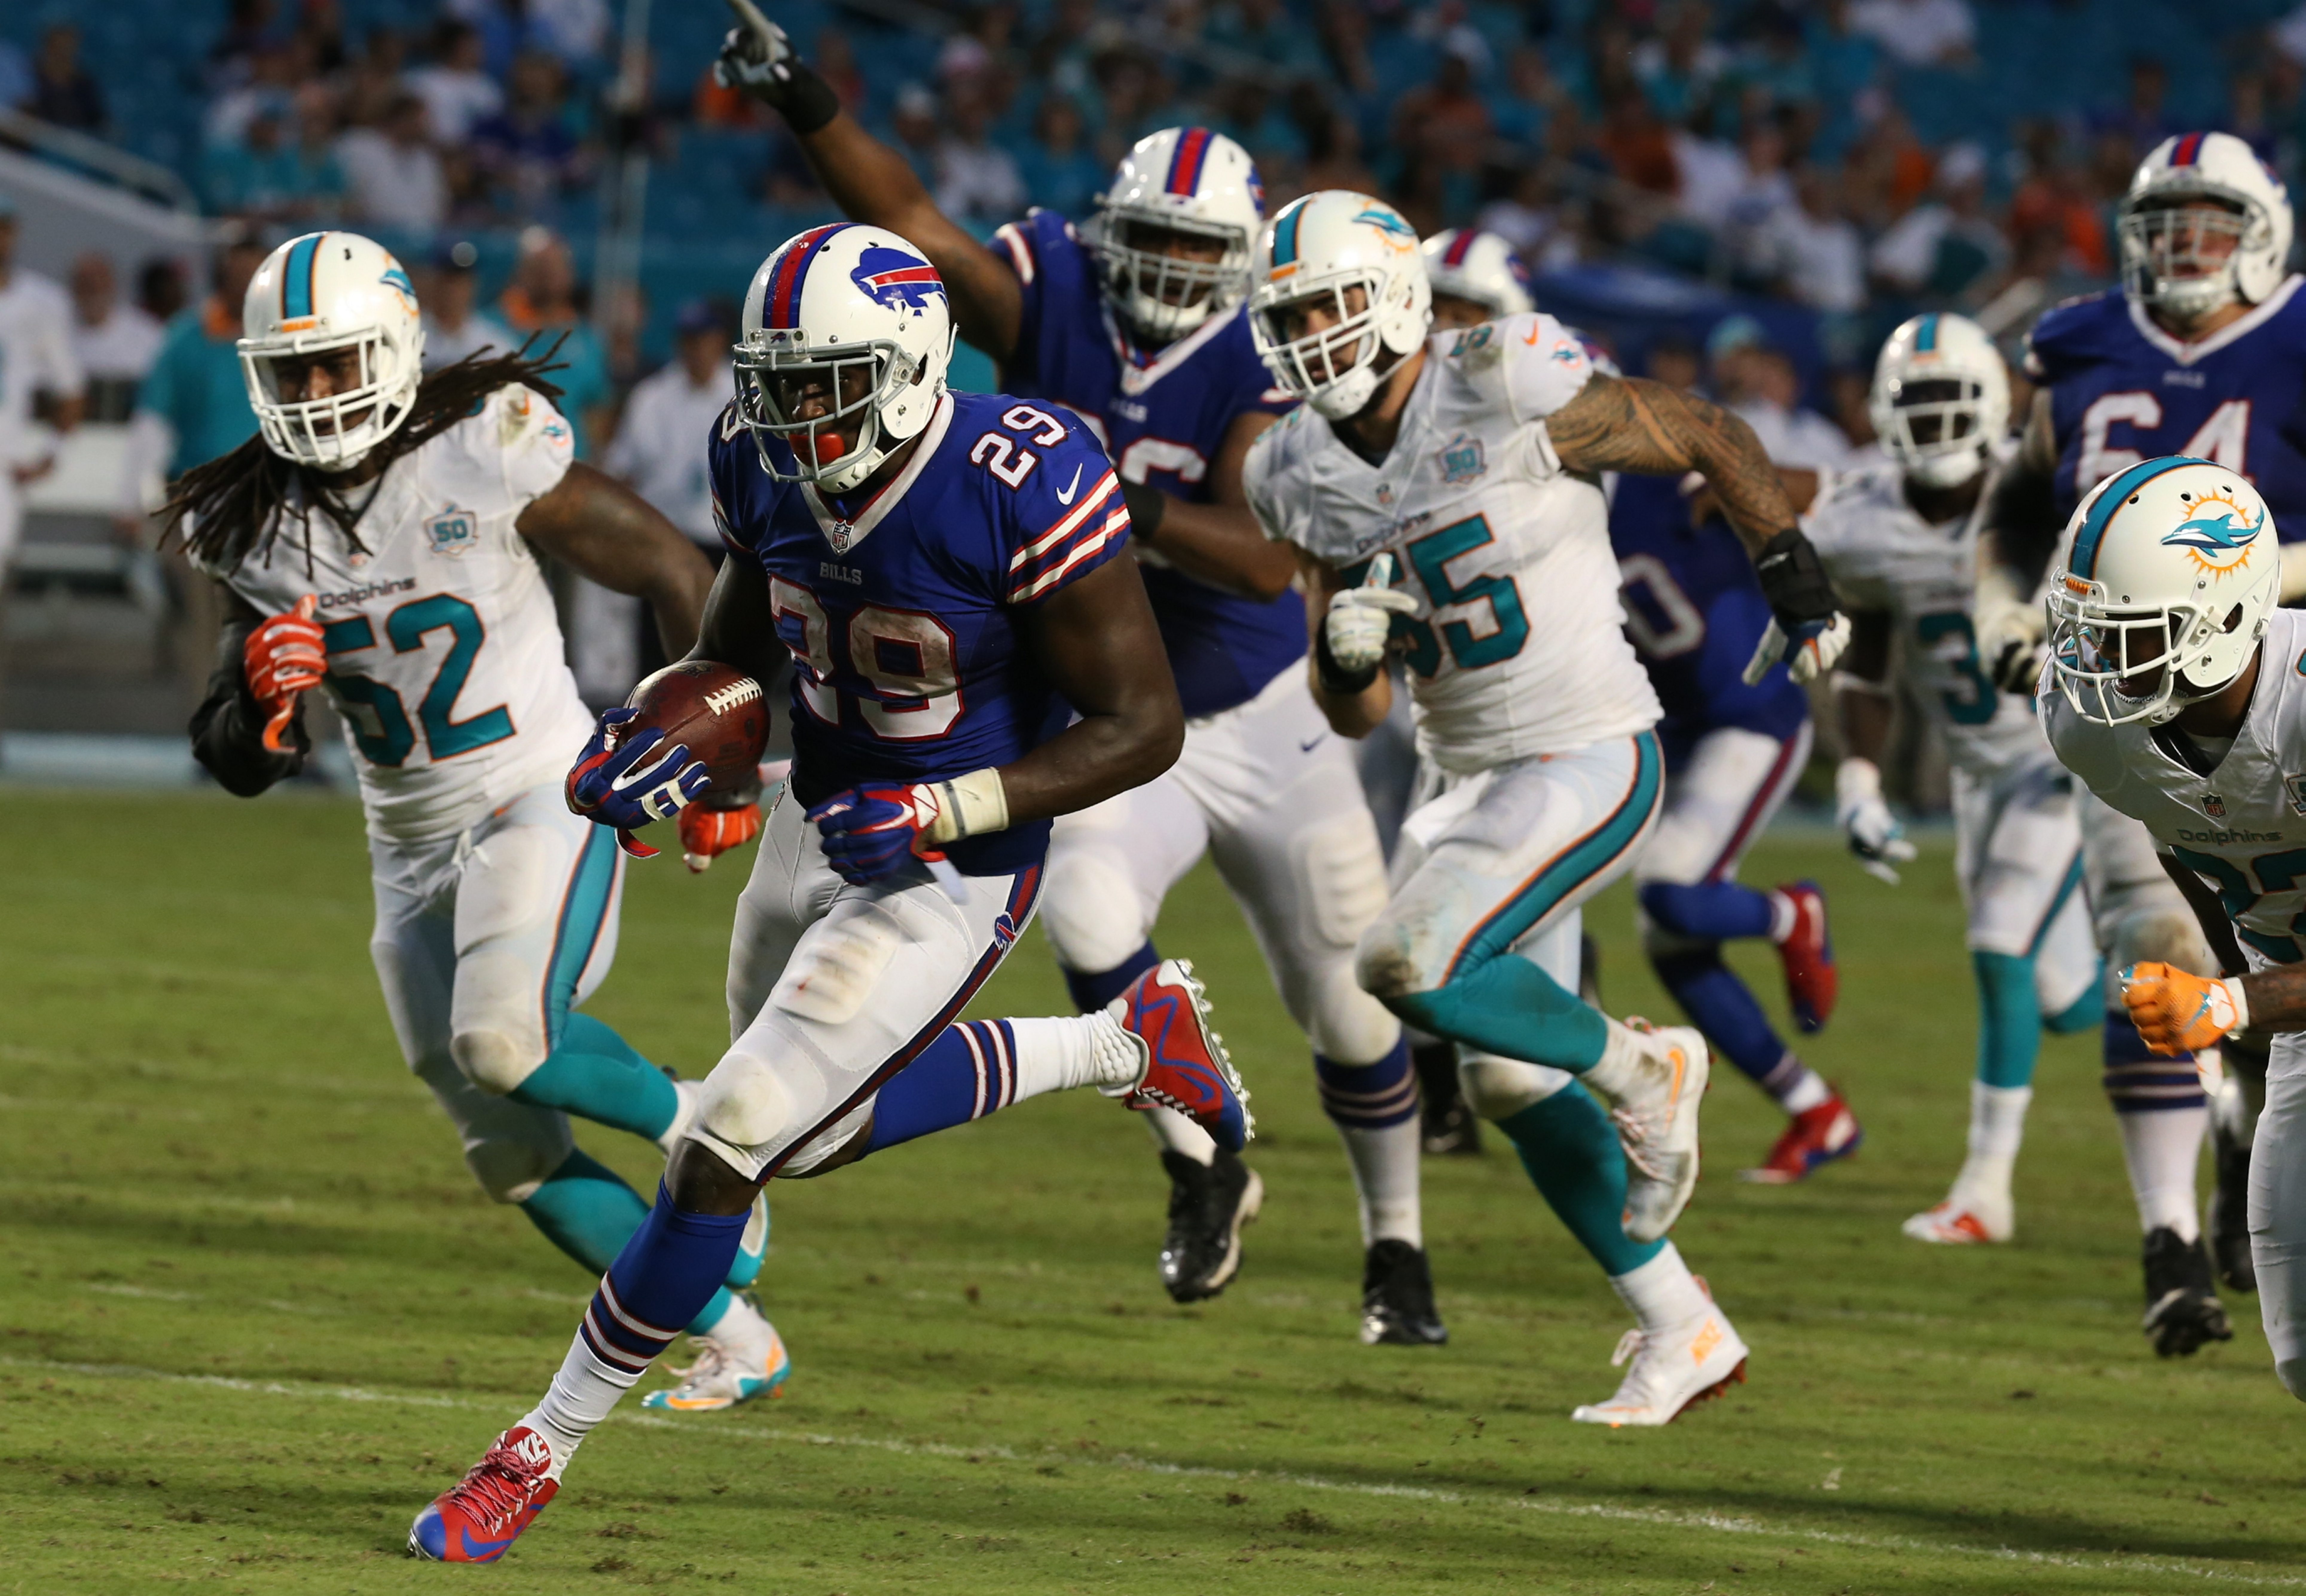 Bills running back Karlos Williams breaks through the Dolphins defense for a touchdown during the fourth quarter of the Bills' first meeting with Miami at Sun Life Stadium.